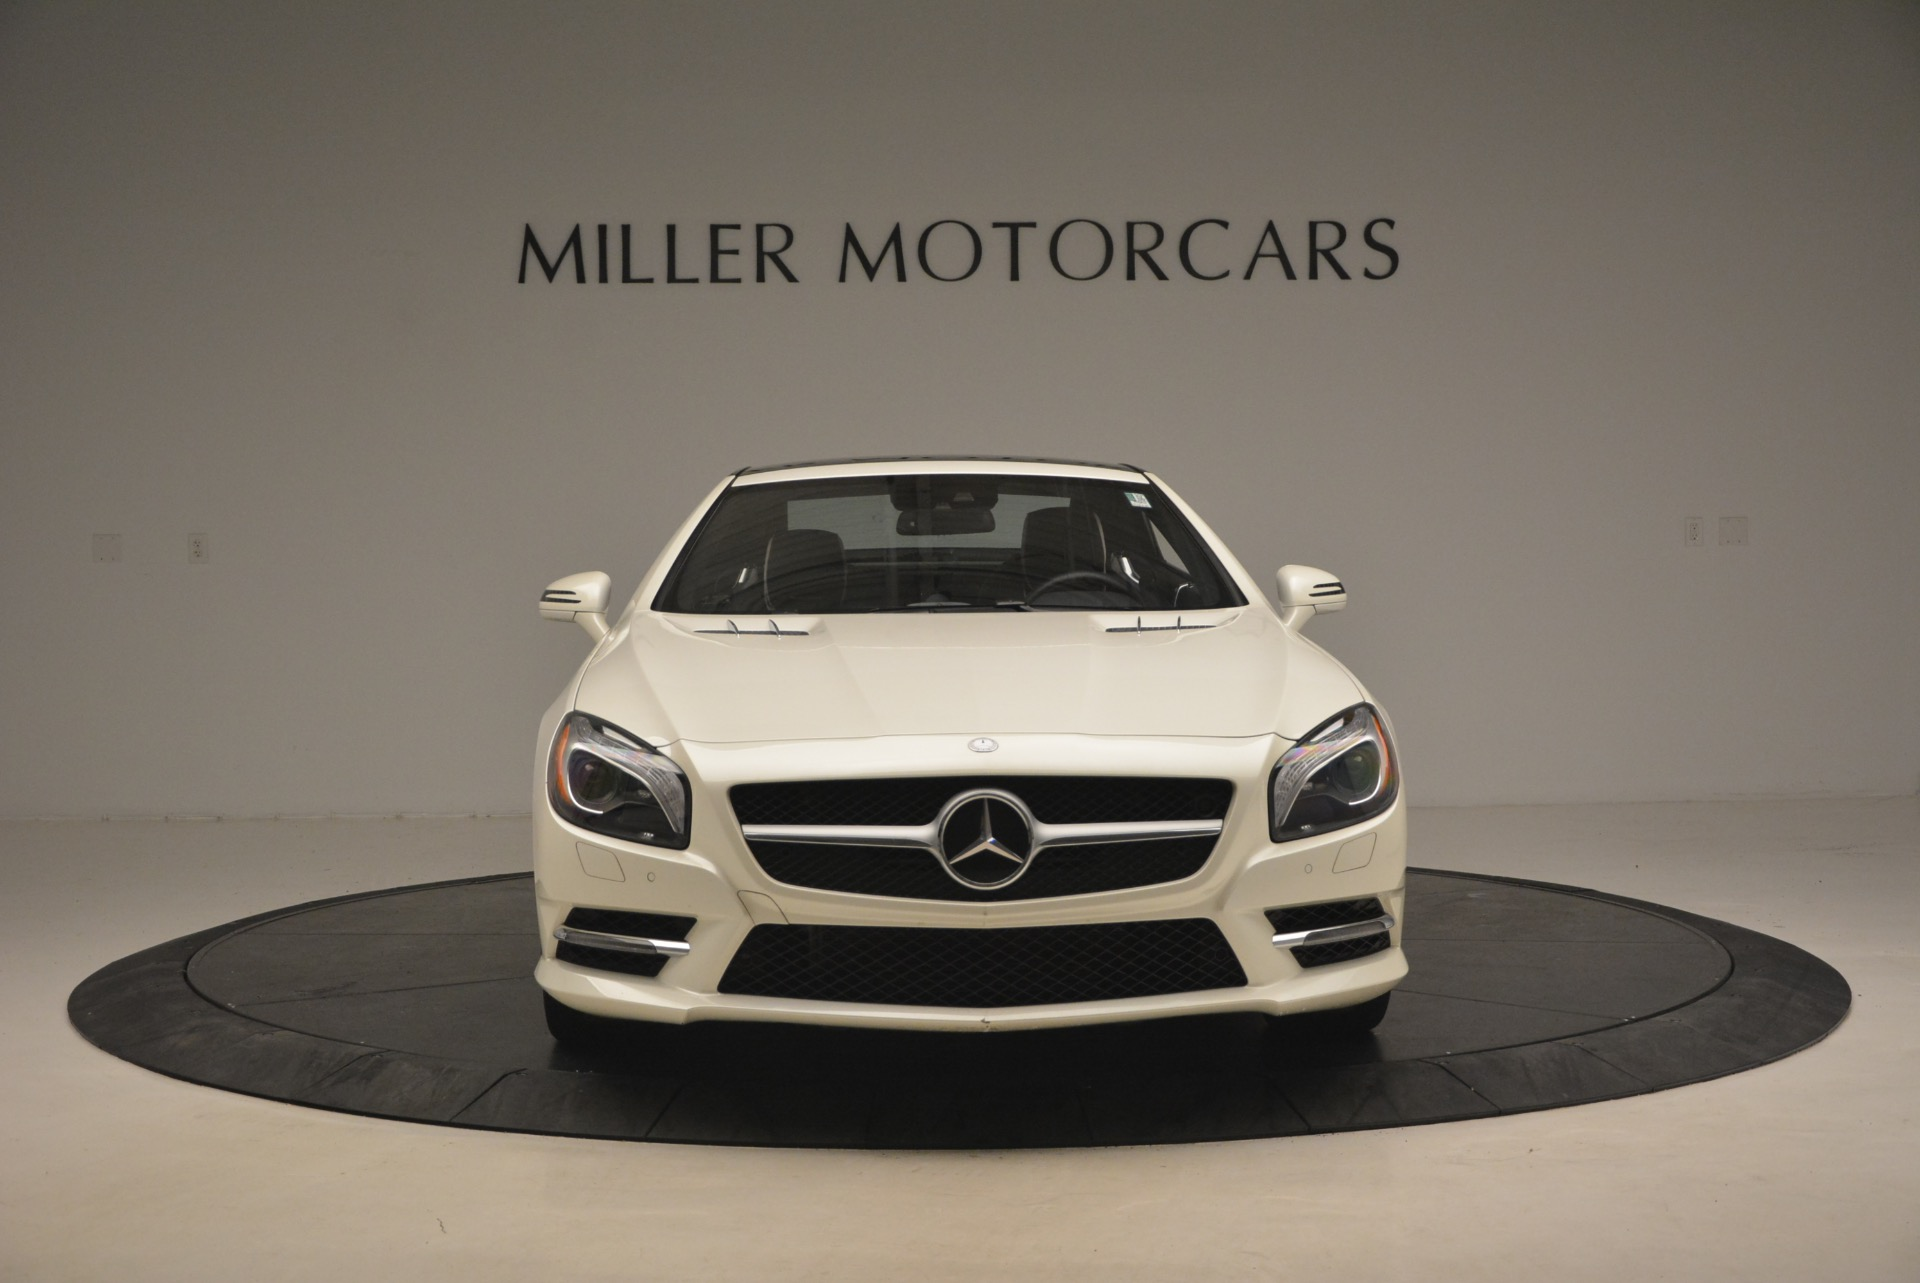 Used 2015 Mercedes Benz SL-Class SL 550 For Sale In Greenwich, CT 1261_p14